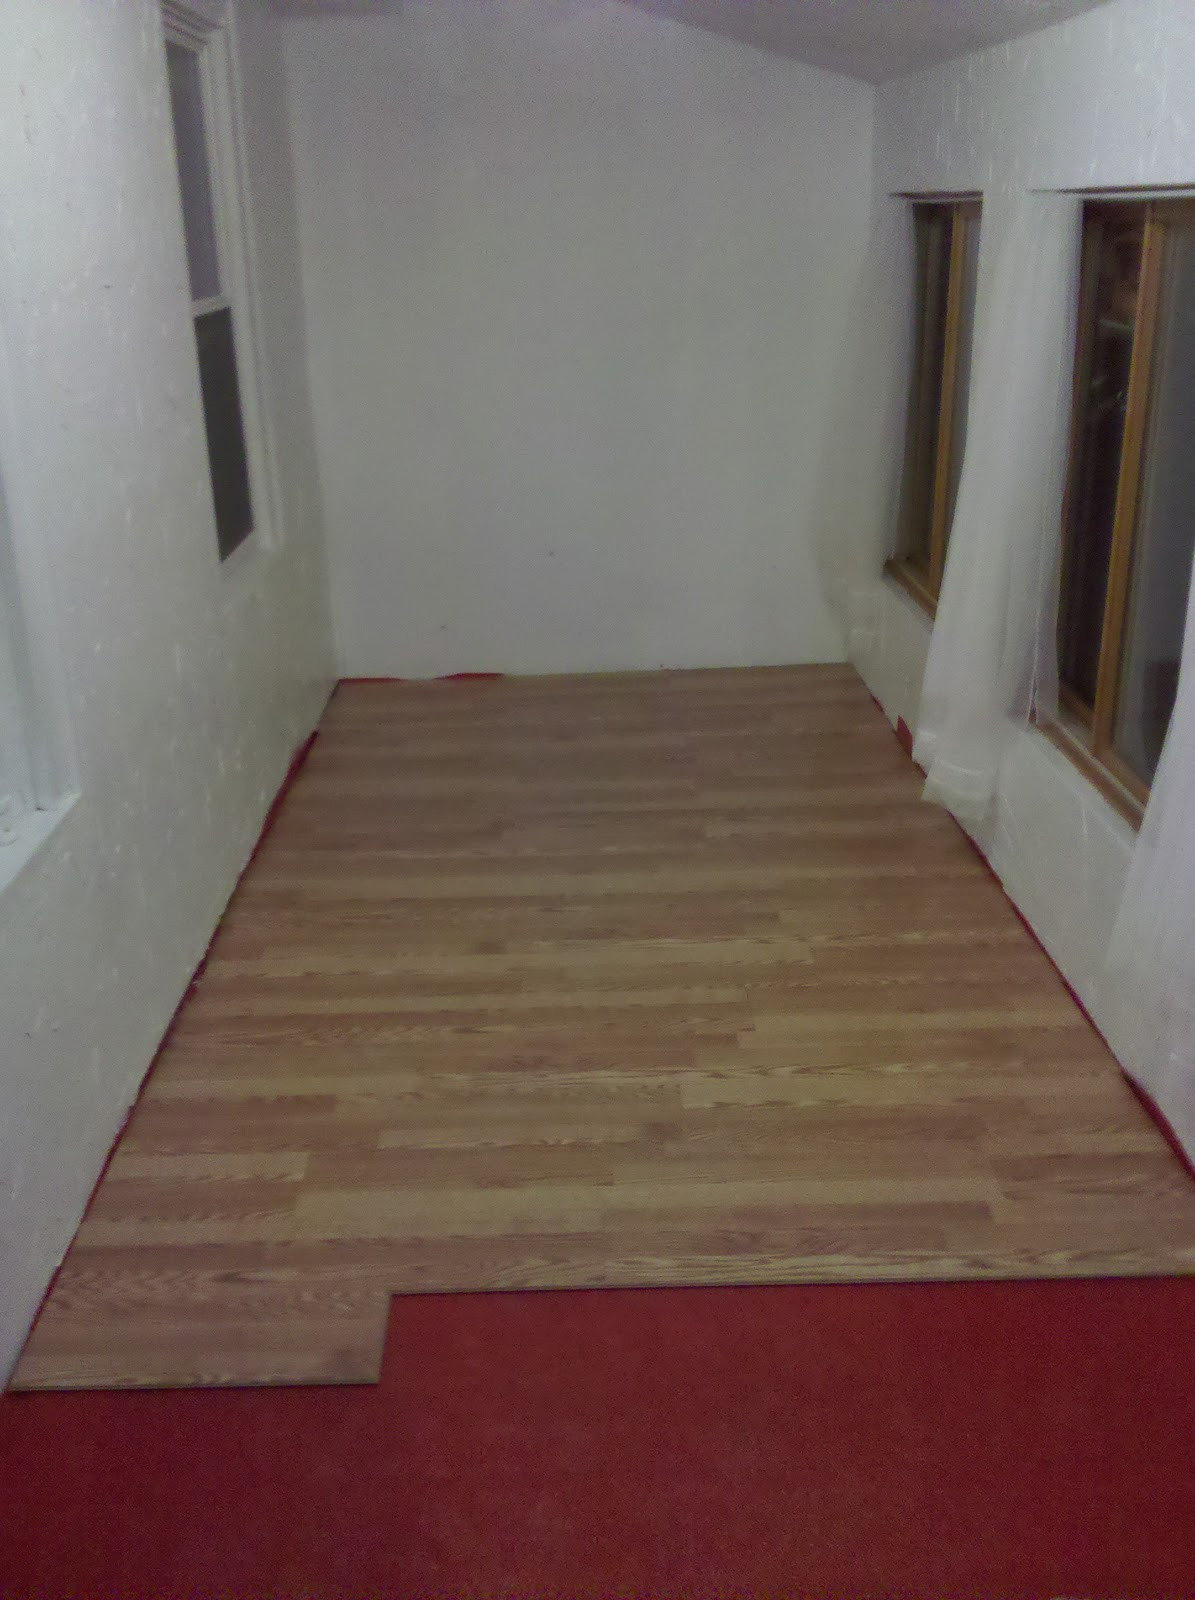 Best ideas about DIY Wood Floors . Save or Pin Hammers and High Heels Spare Room Flooring is Done DIY Now.